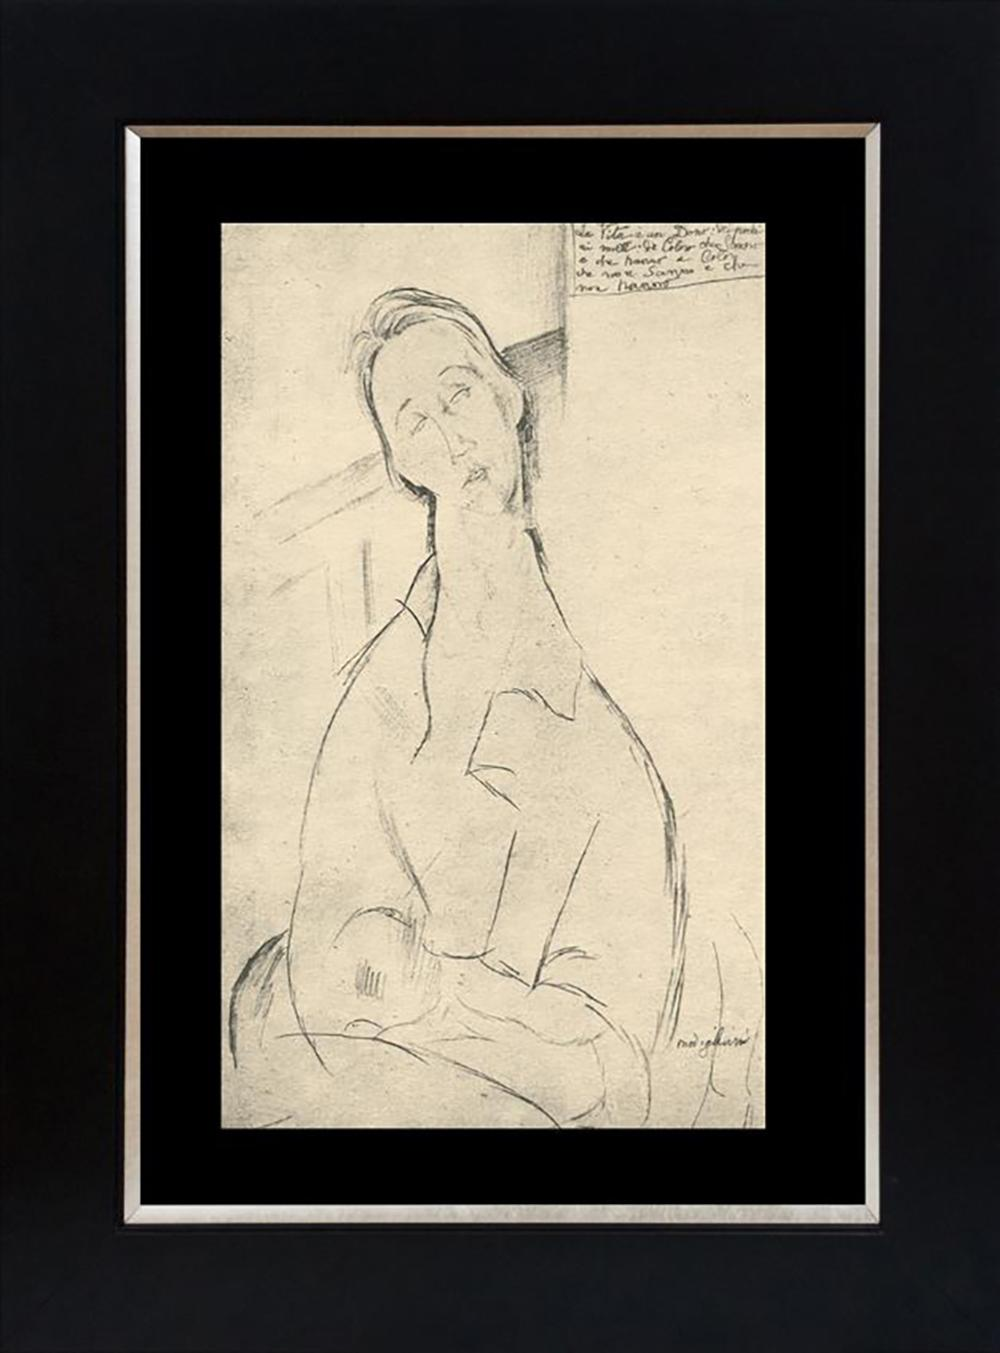 Modigliani Lithograph 90 year old lithograph on velum paper limited edition